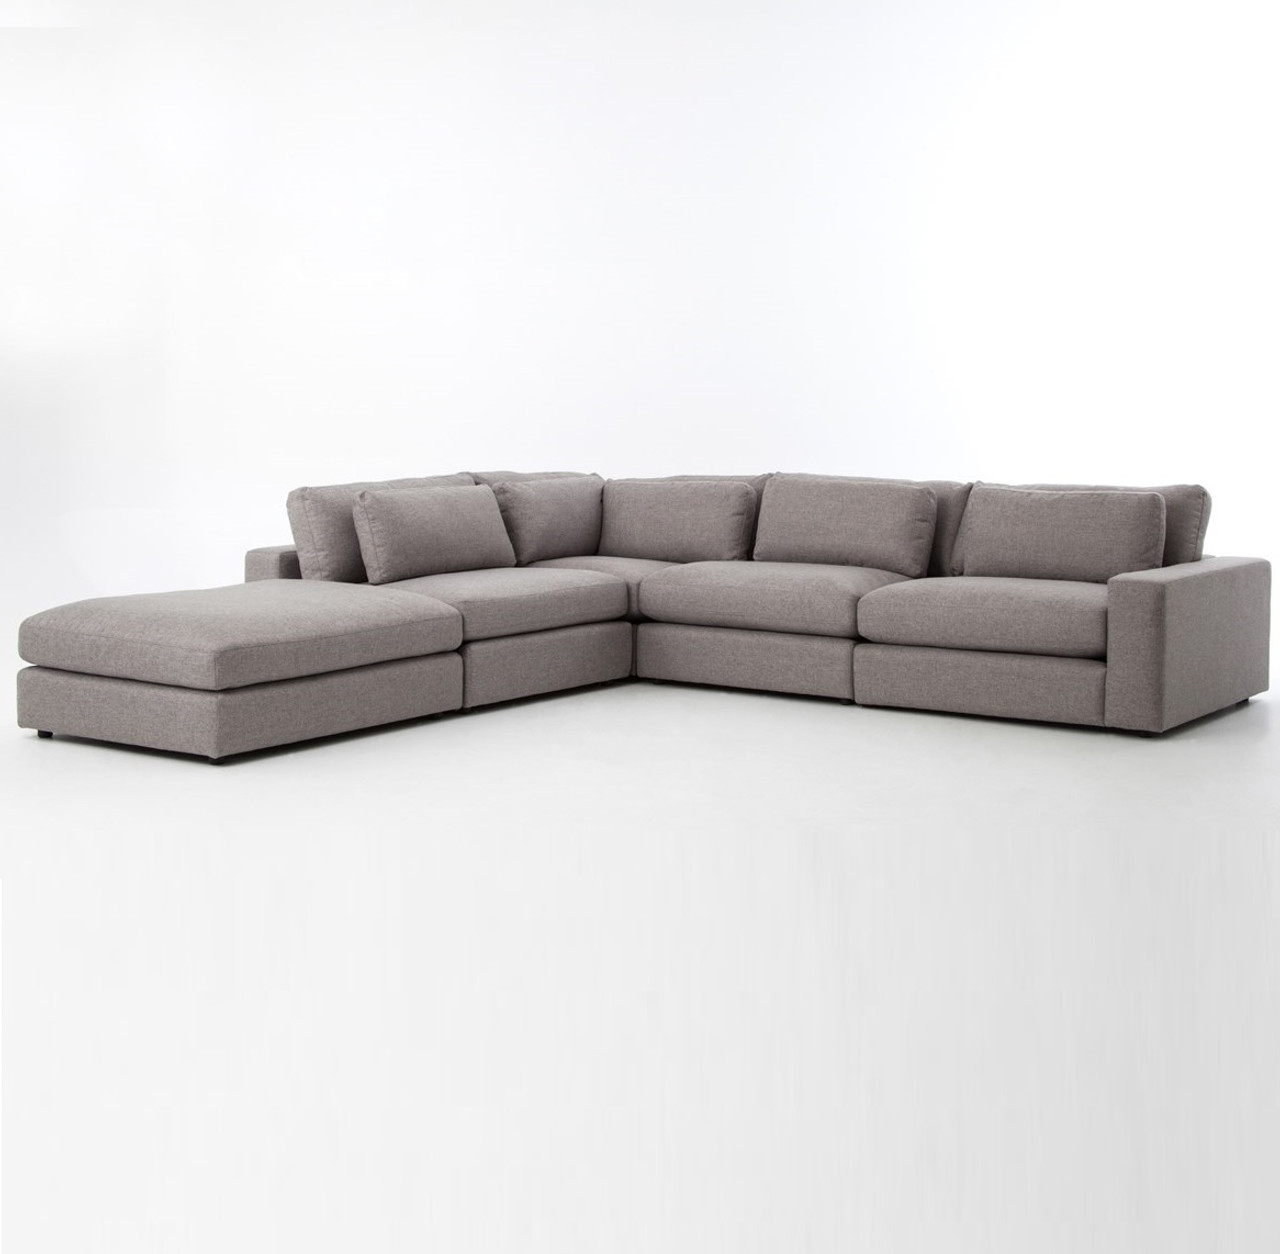 Bloor gray contemporary 5 piece corner sectional sofa for 5 piece grey sectional sofa